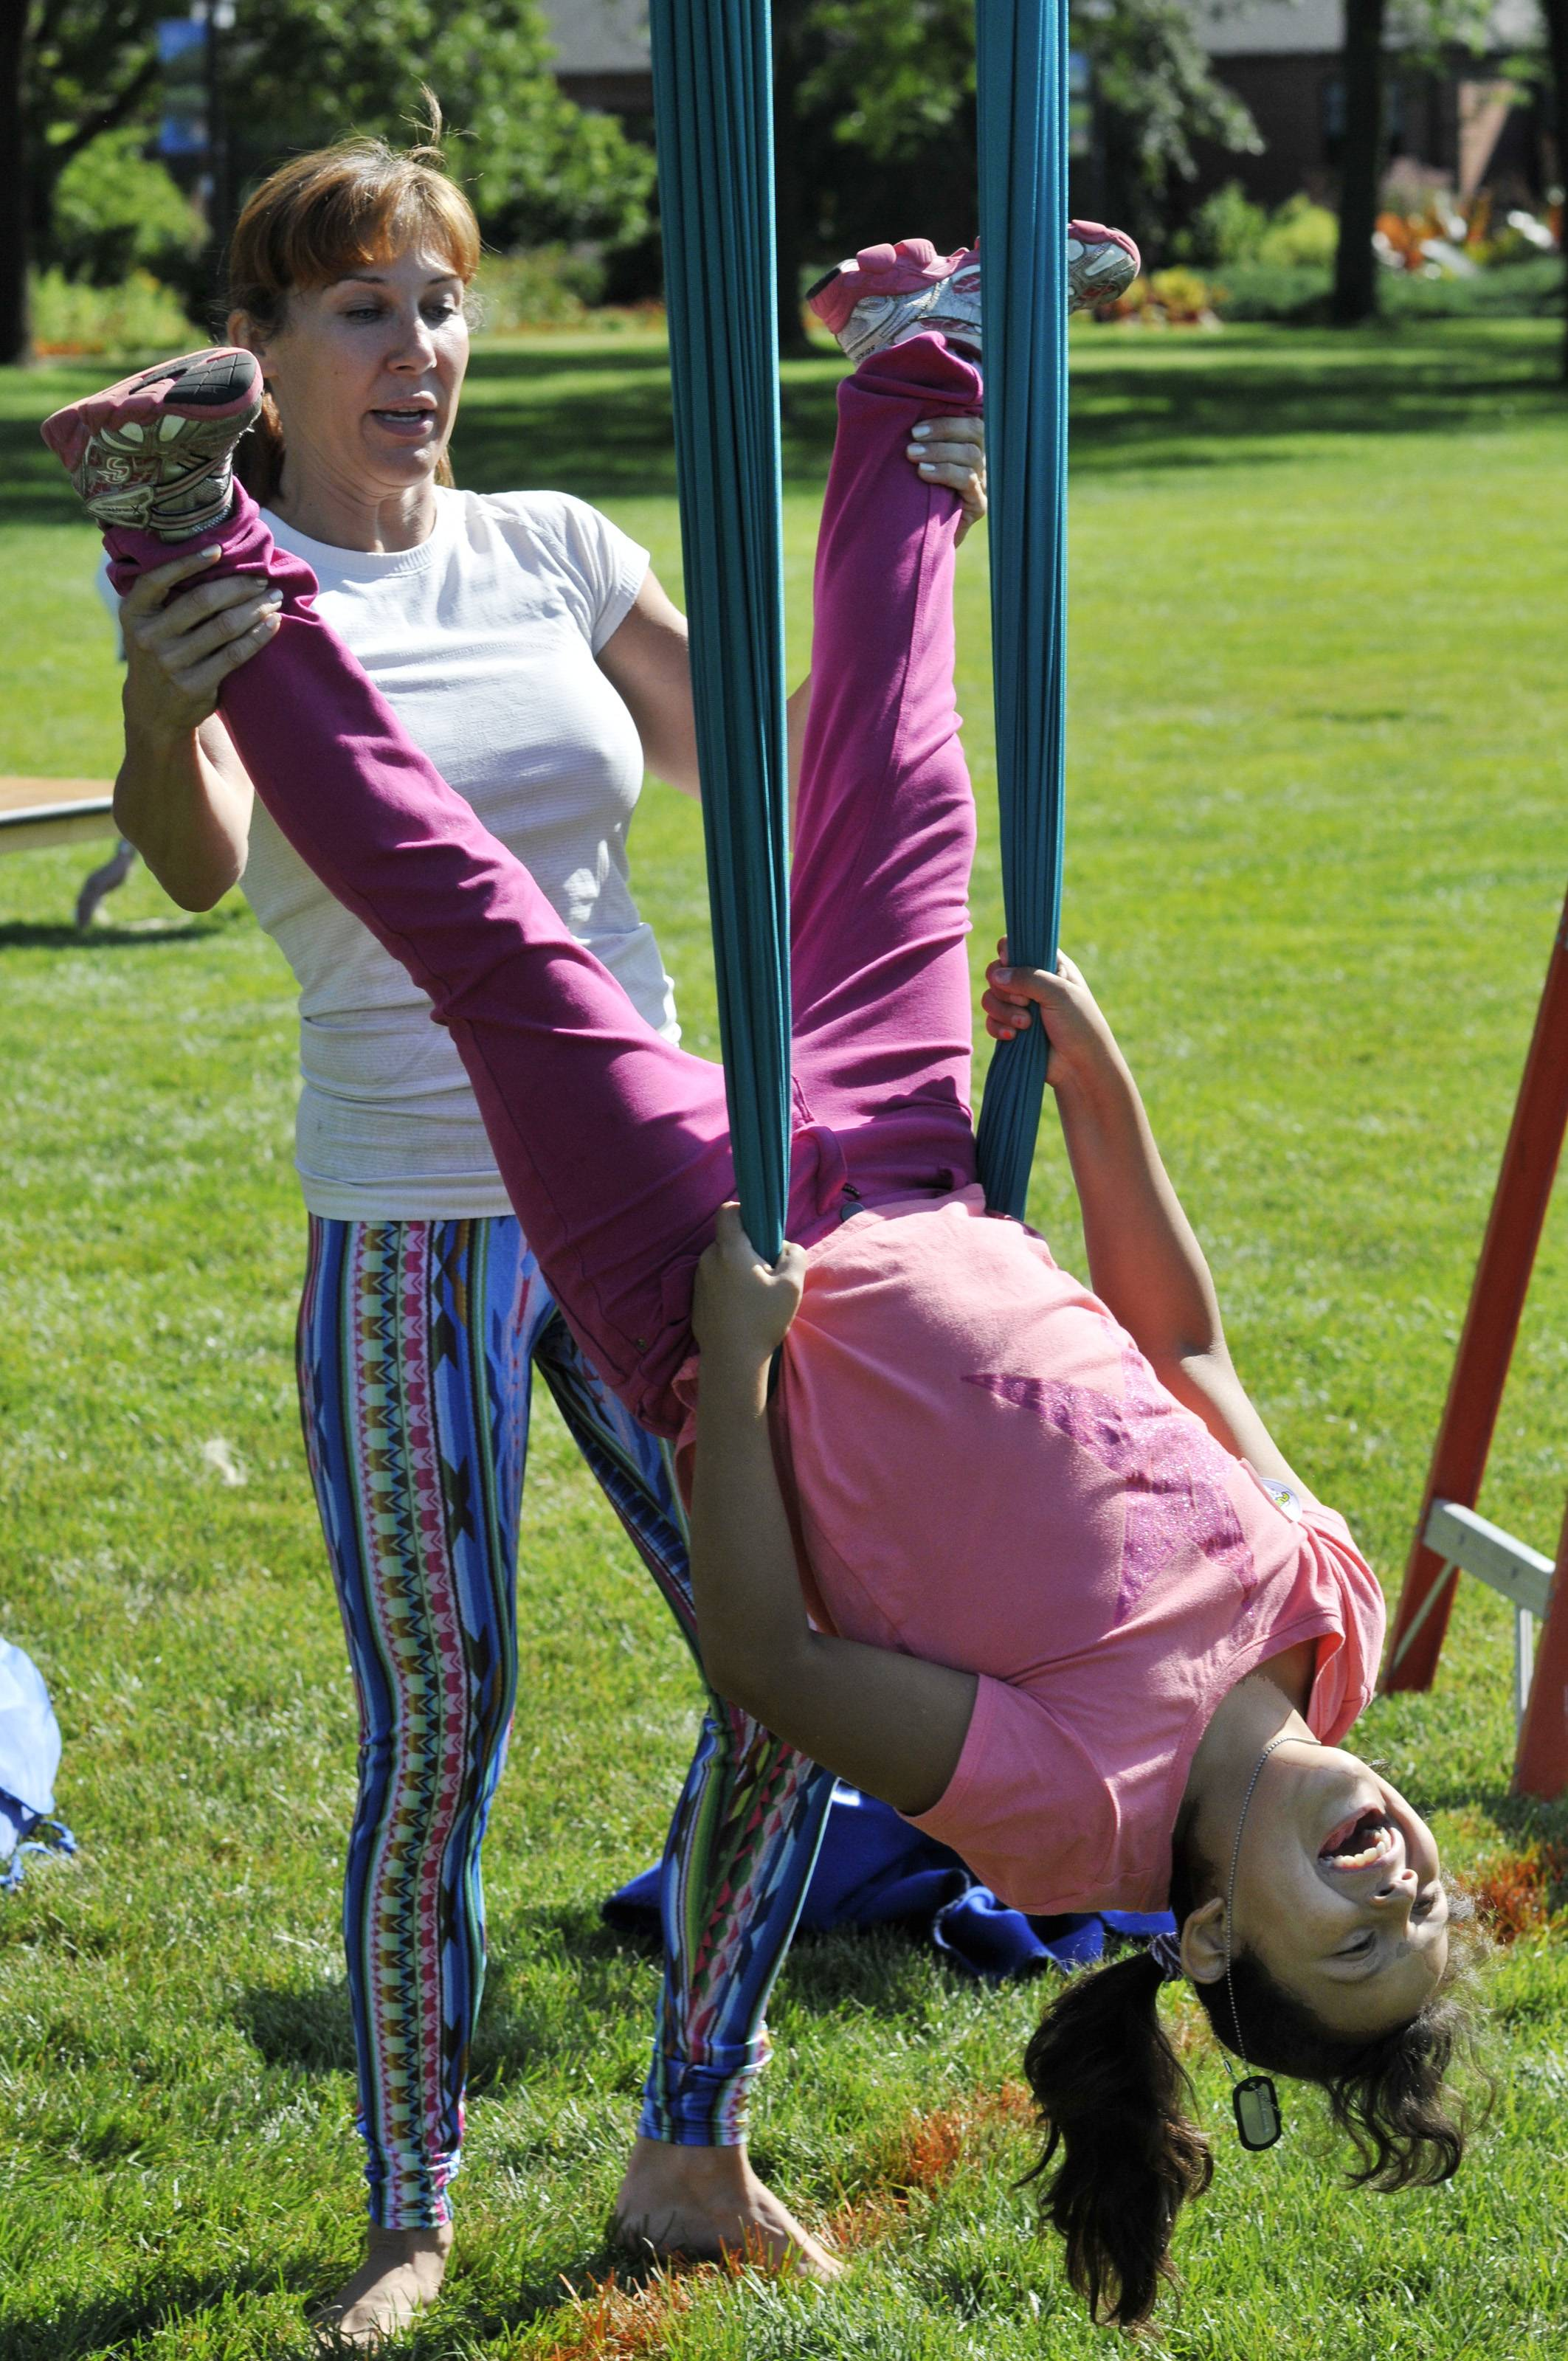 Rebeca Riser, owner of Flying Buddha Fitness in Wheaton, shows Jayden Huesca of West Chicago how to do an aerial yoga move during a Kids' Fitness and Health Boot Camp Friday at Cantigny Park.